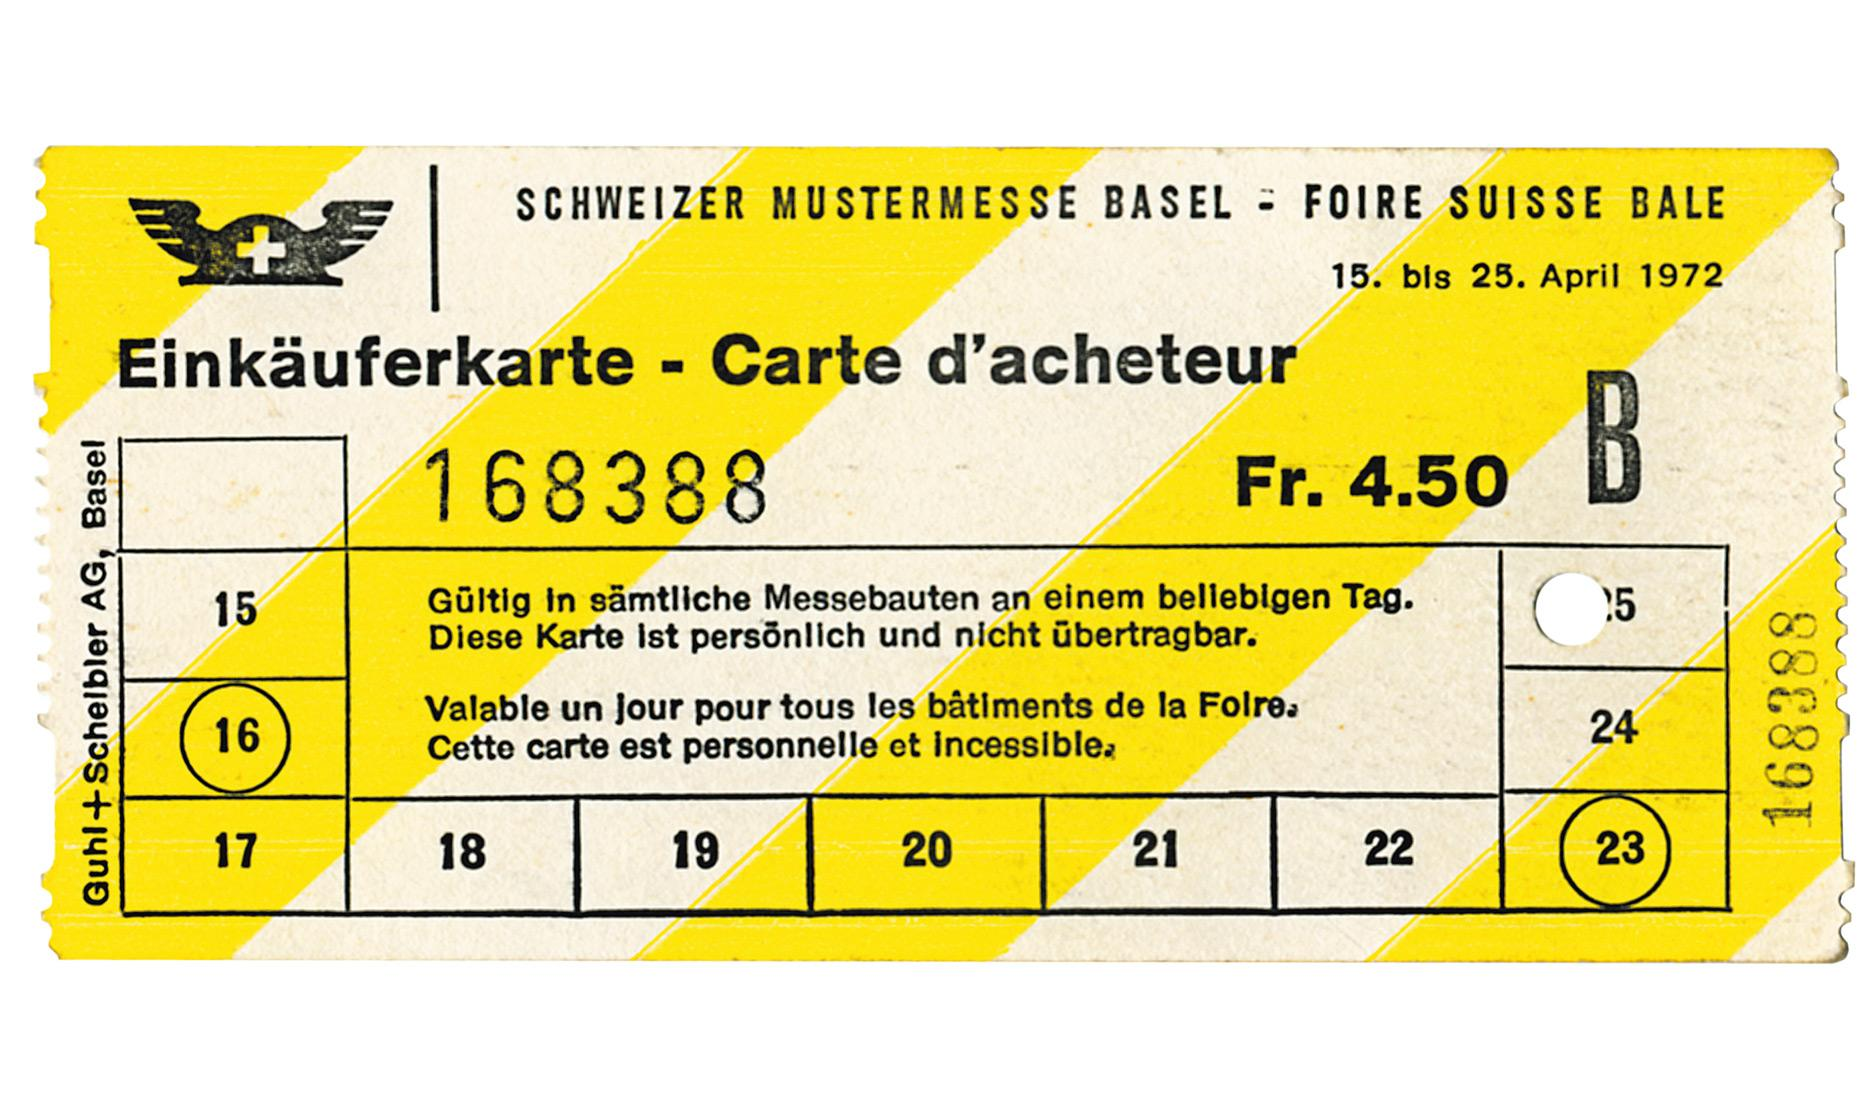 Baselworld ticket from 1972